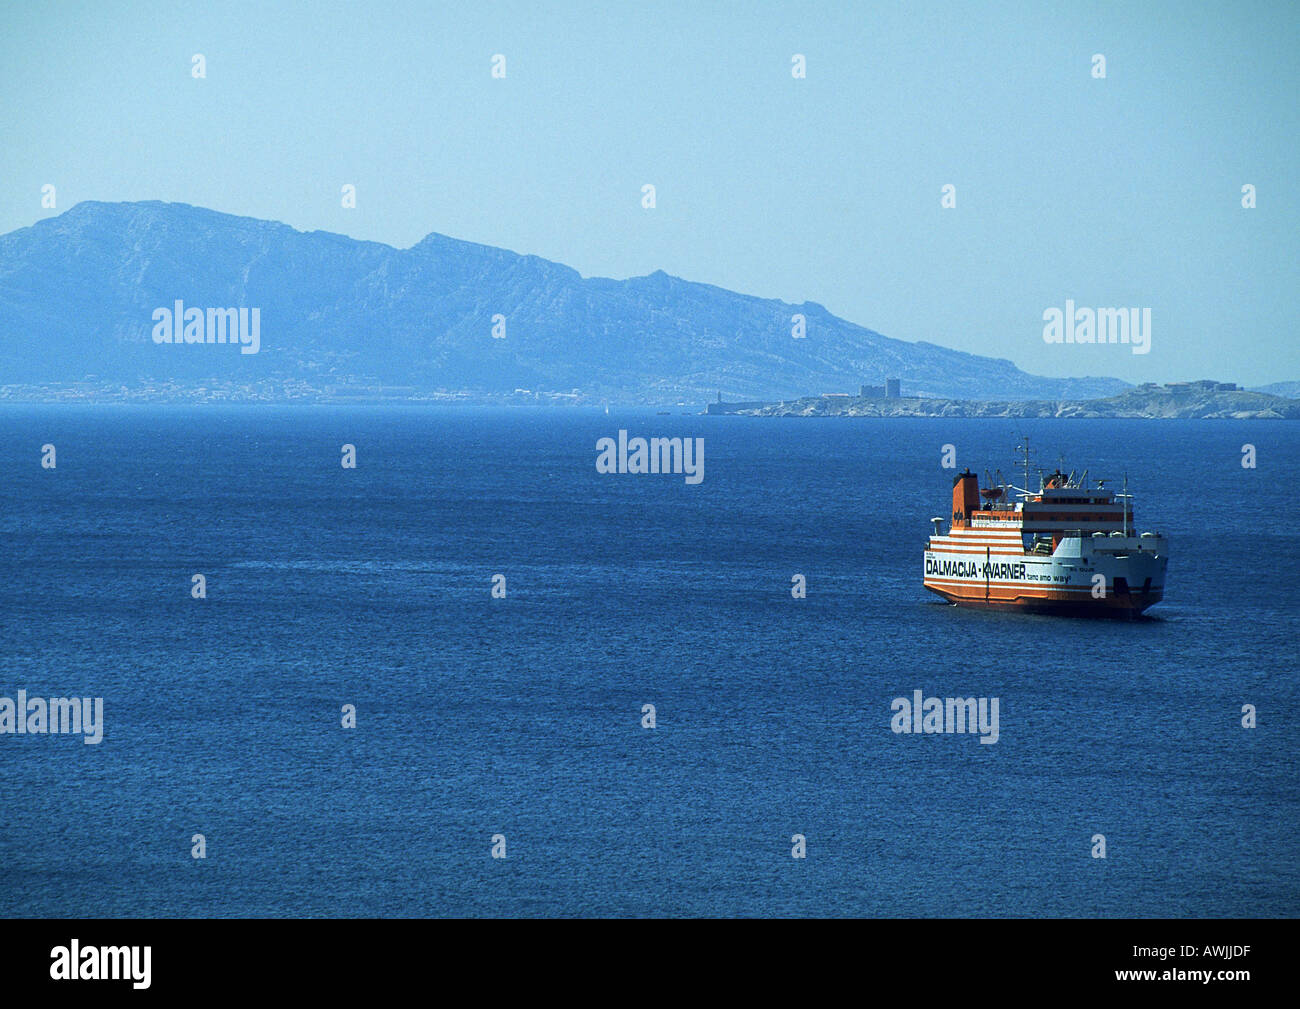 Freight ship on water - Stock Image